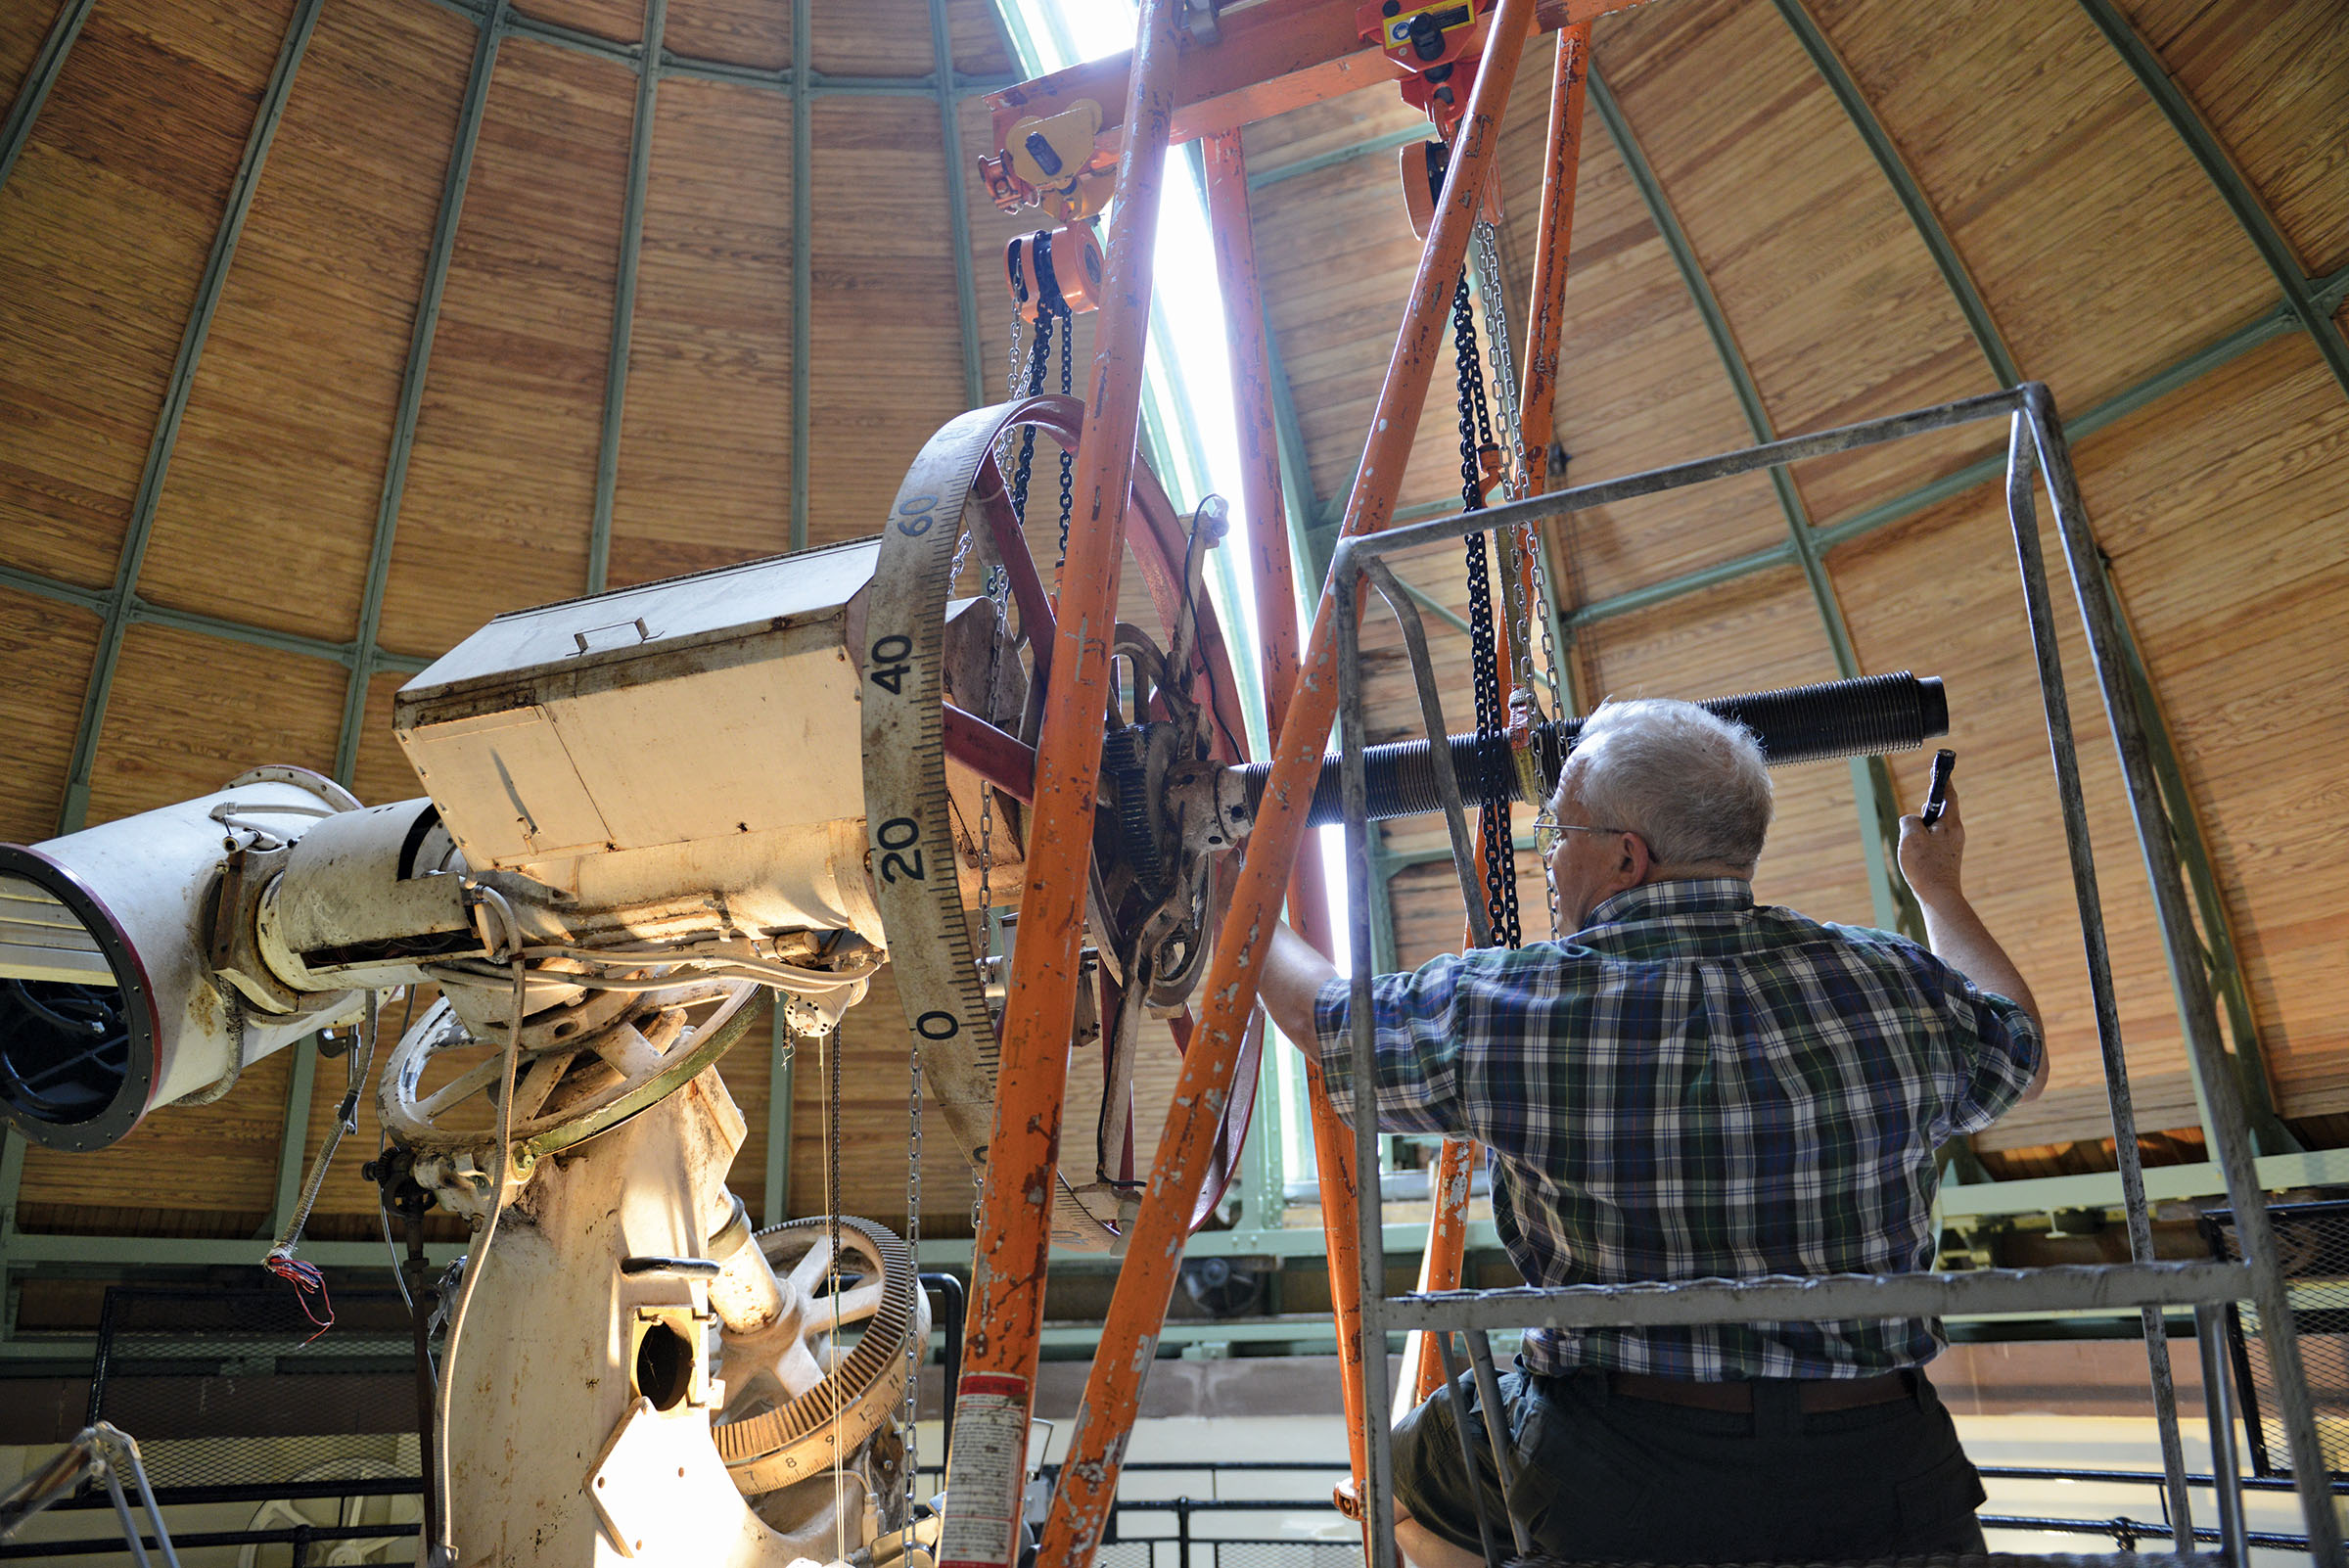 Engineer Fred Orthlieb, a specialist in antique telescope restoration, works on the nearly century-old refractor telescope. Photography by Olivia Drake MALS '08.